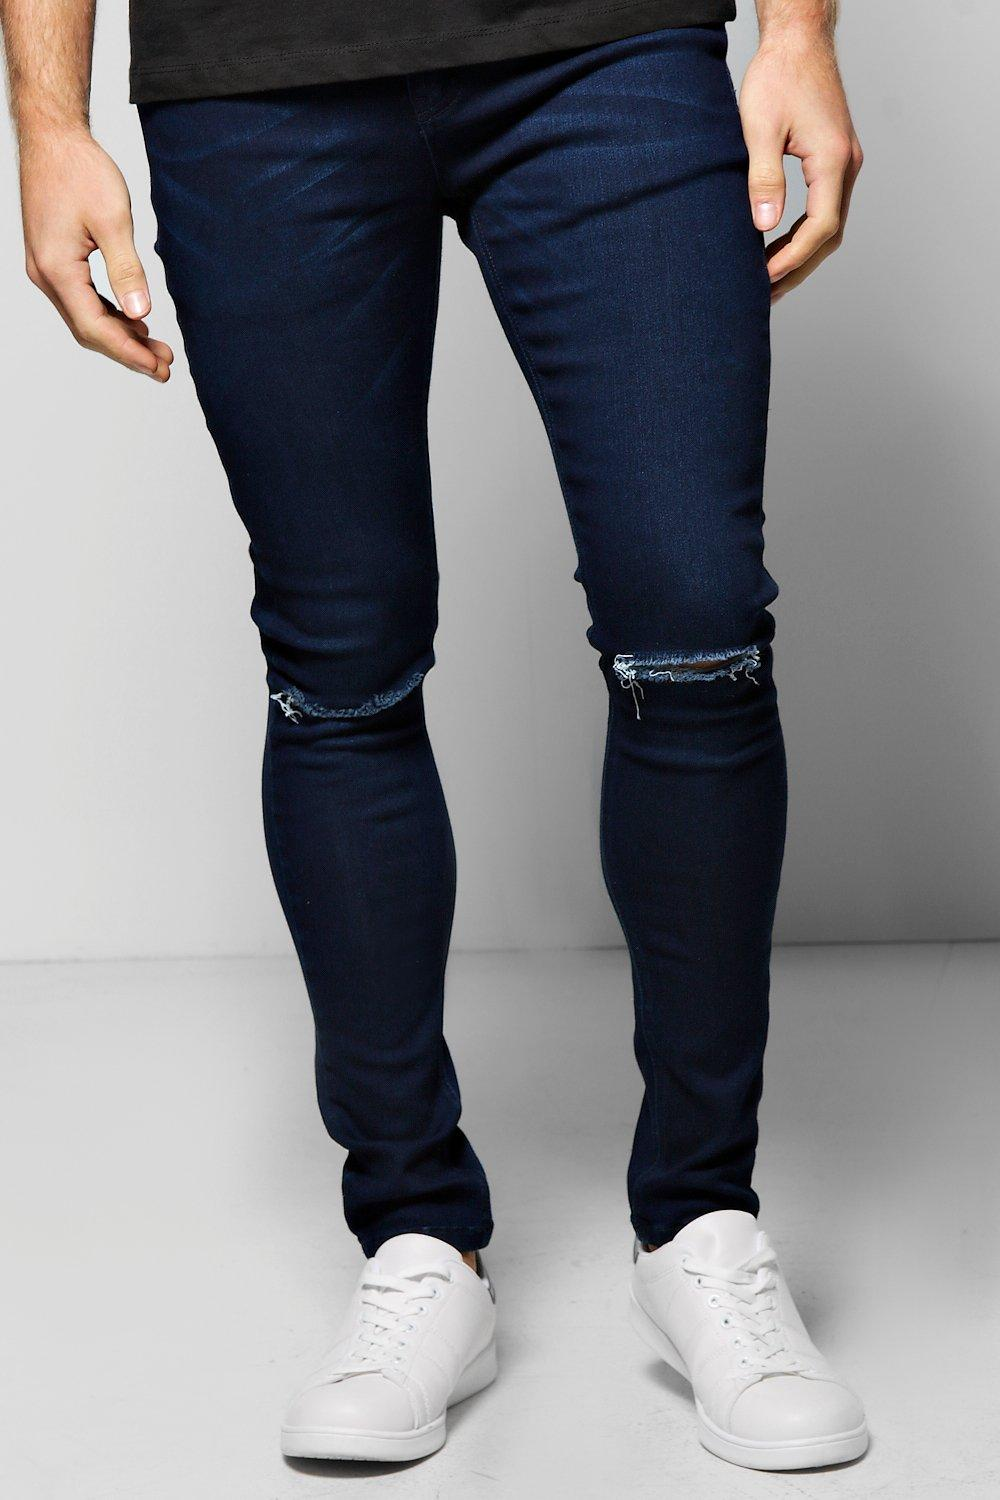 6809ba475cd6 Super Skinny Stretch Jeans with Ripped Knees - boohooMAN